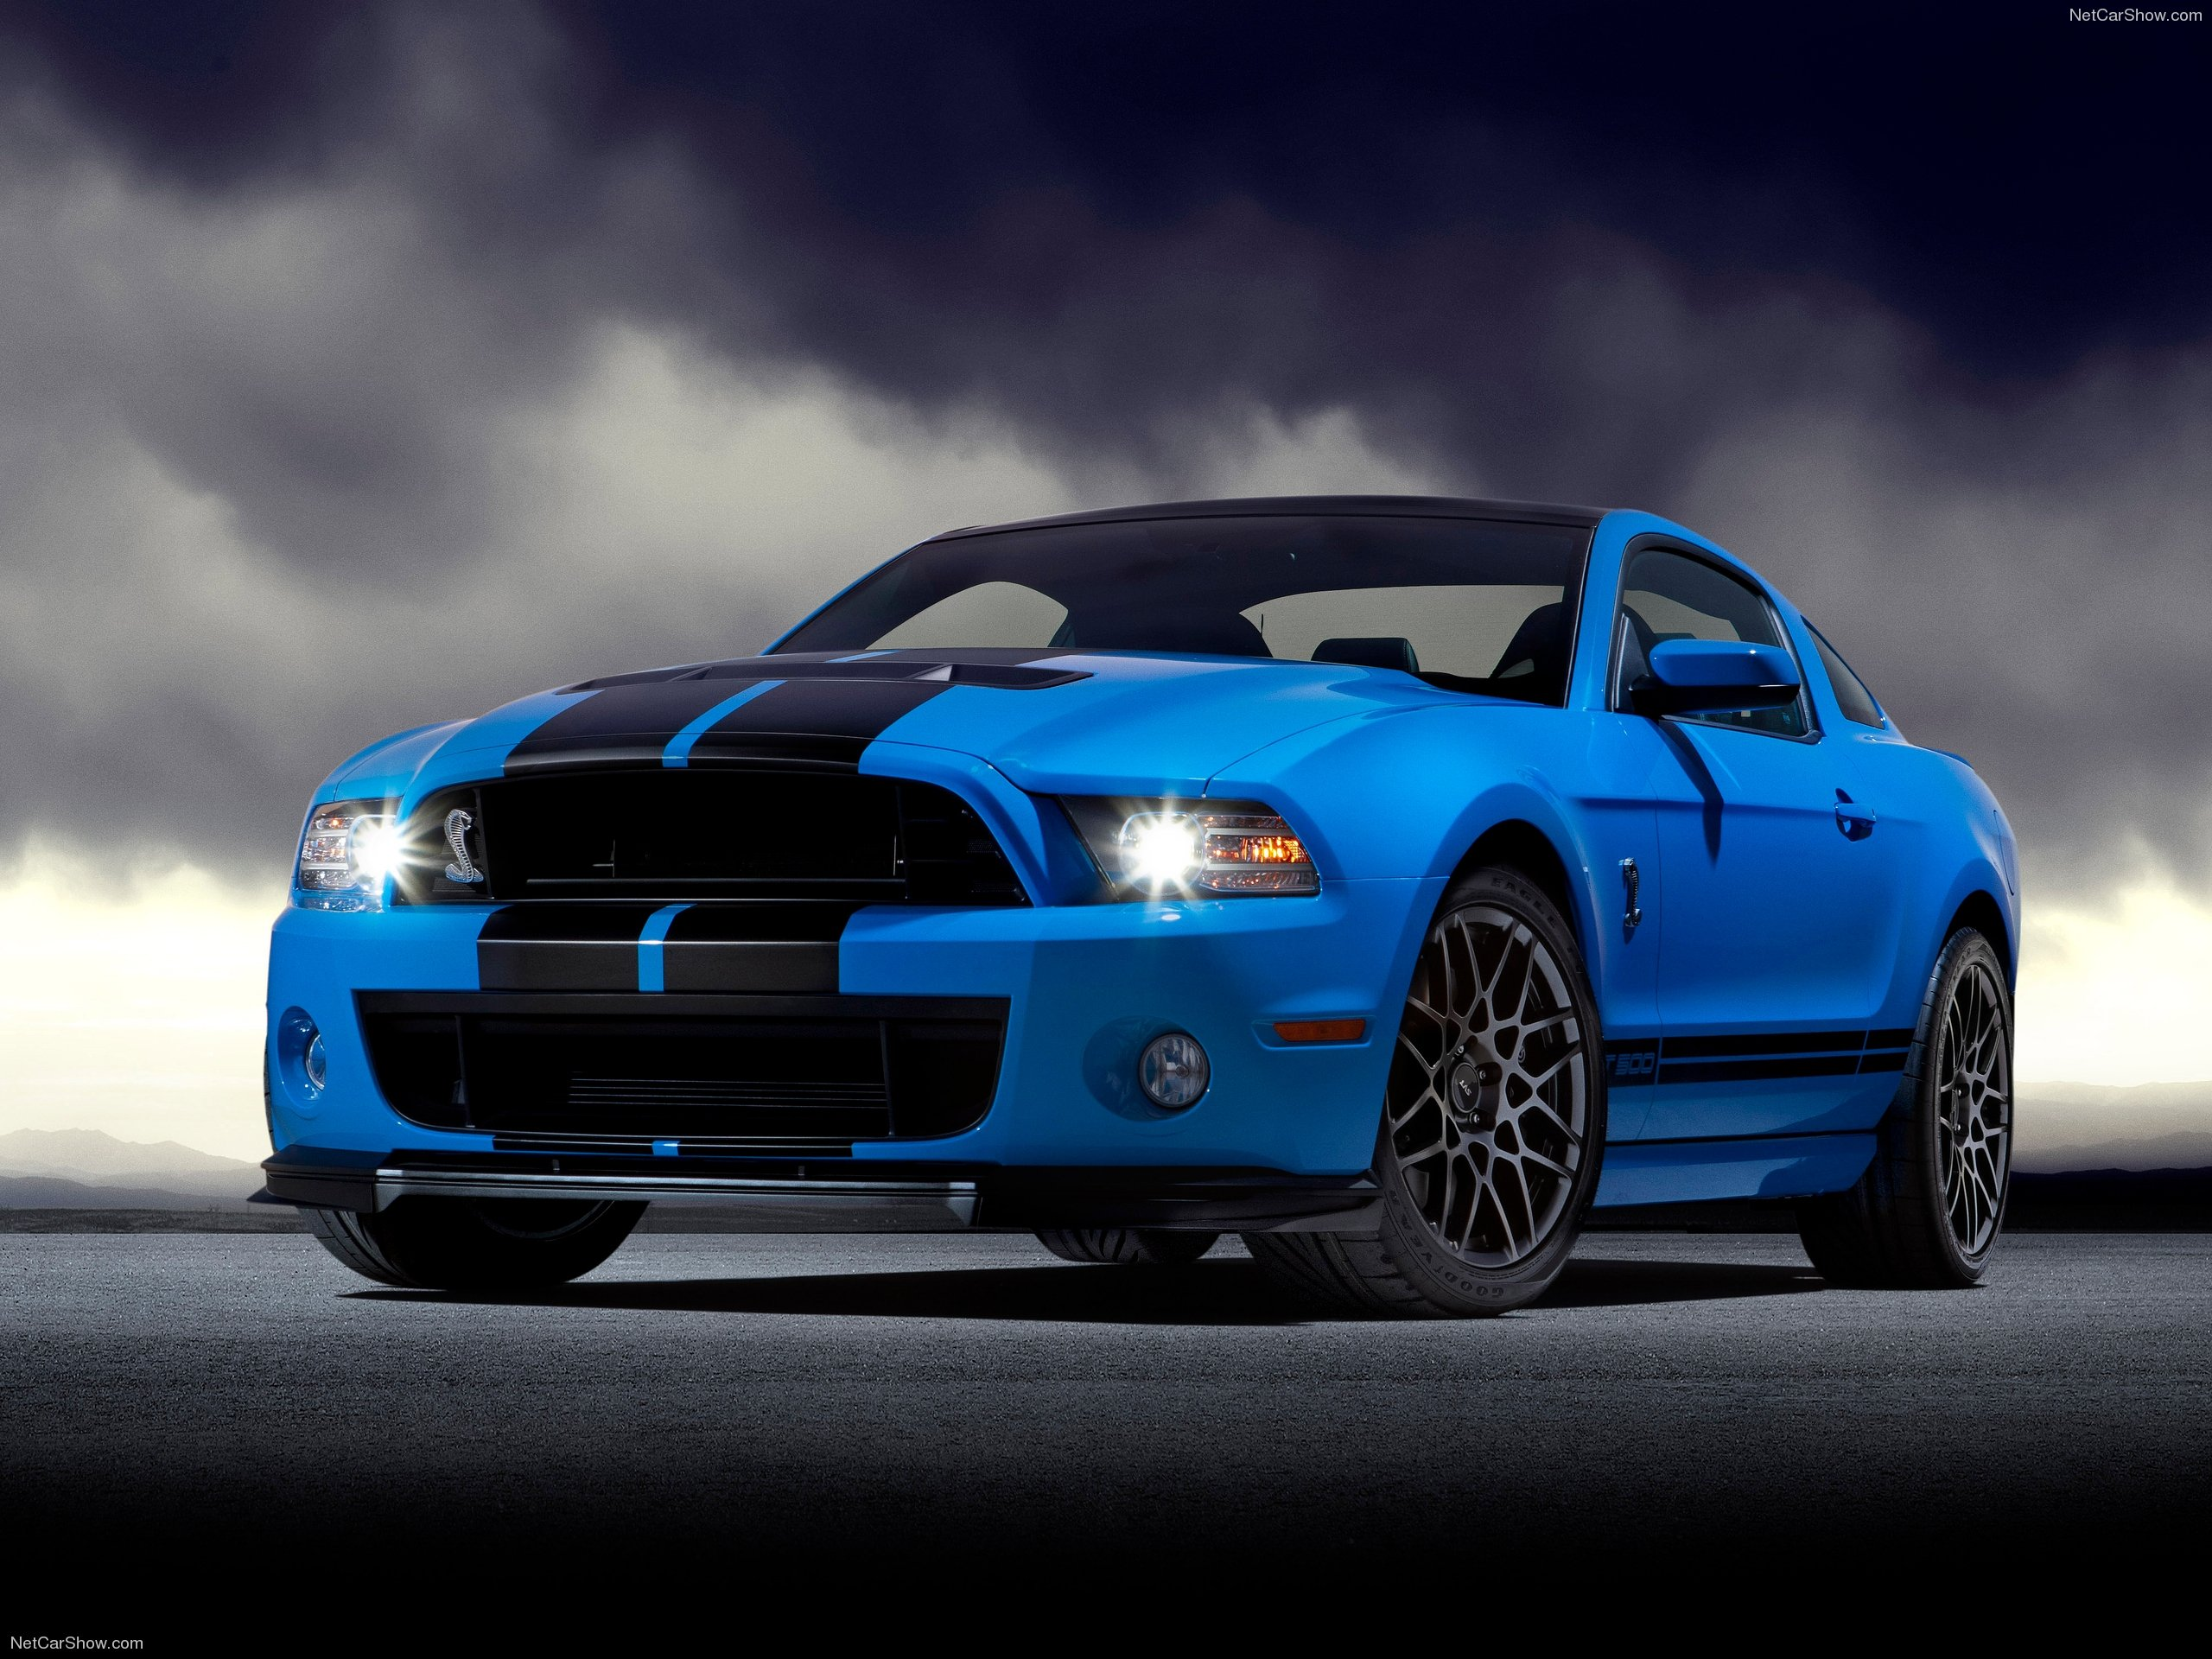 2013 Ford Mustang Shelby GT500 Exclusive HD Wallpapers 1345 2560x1920